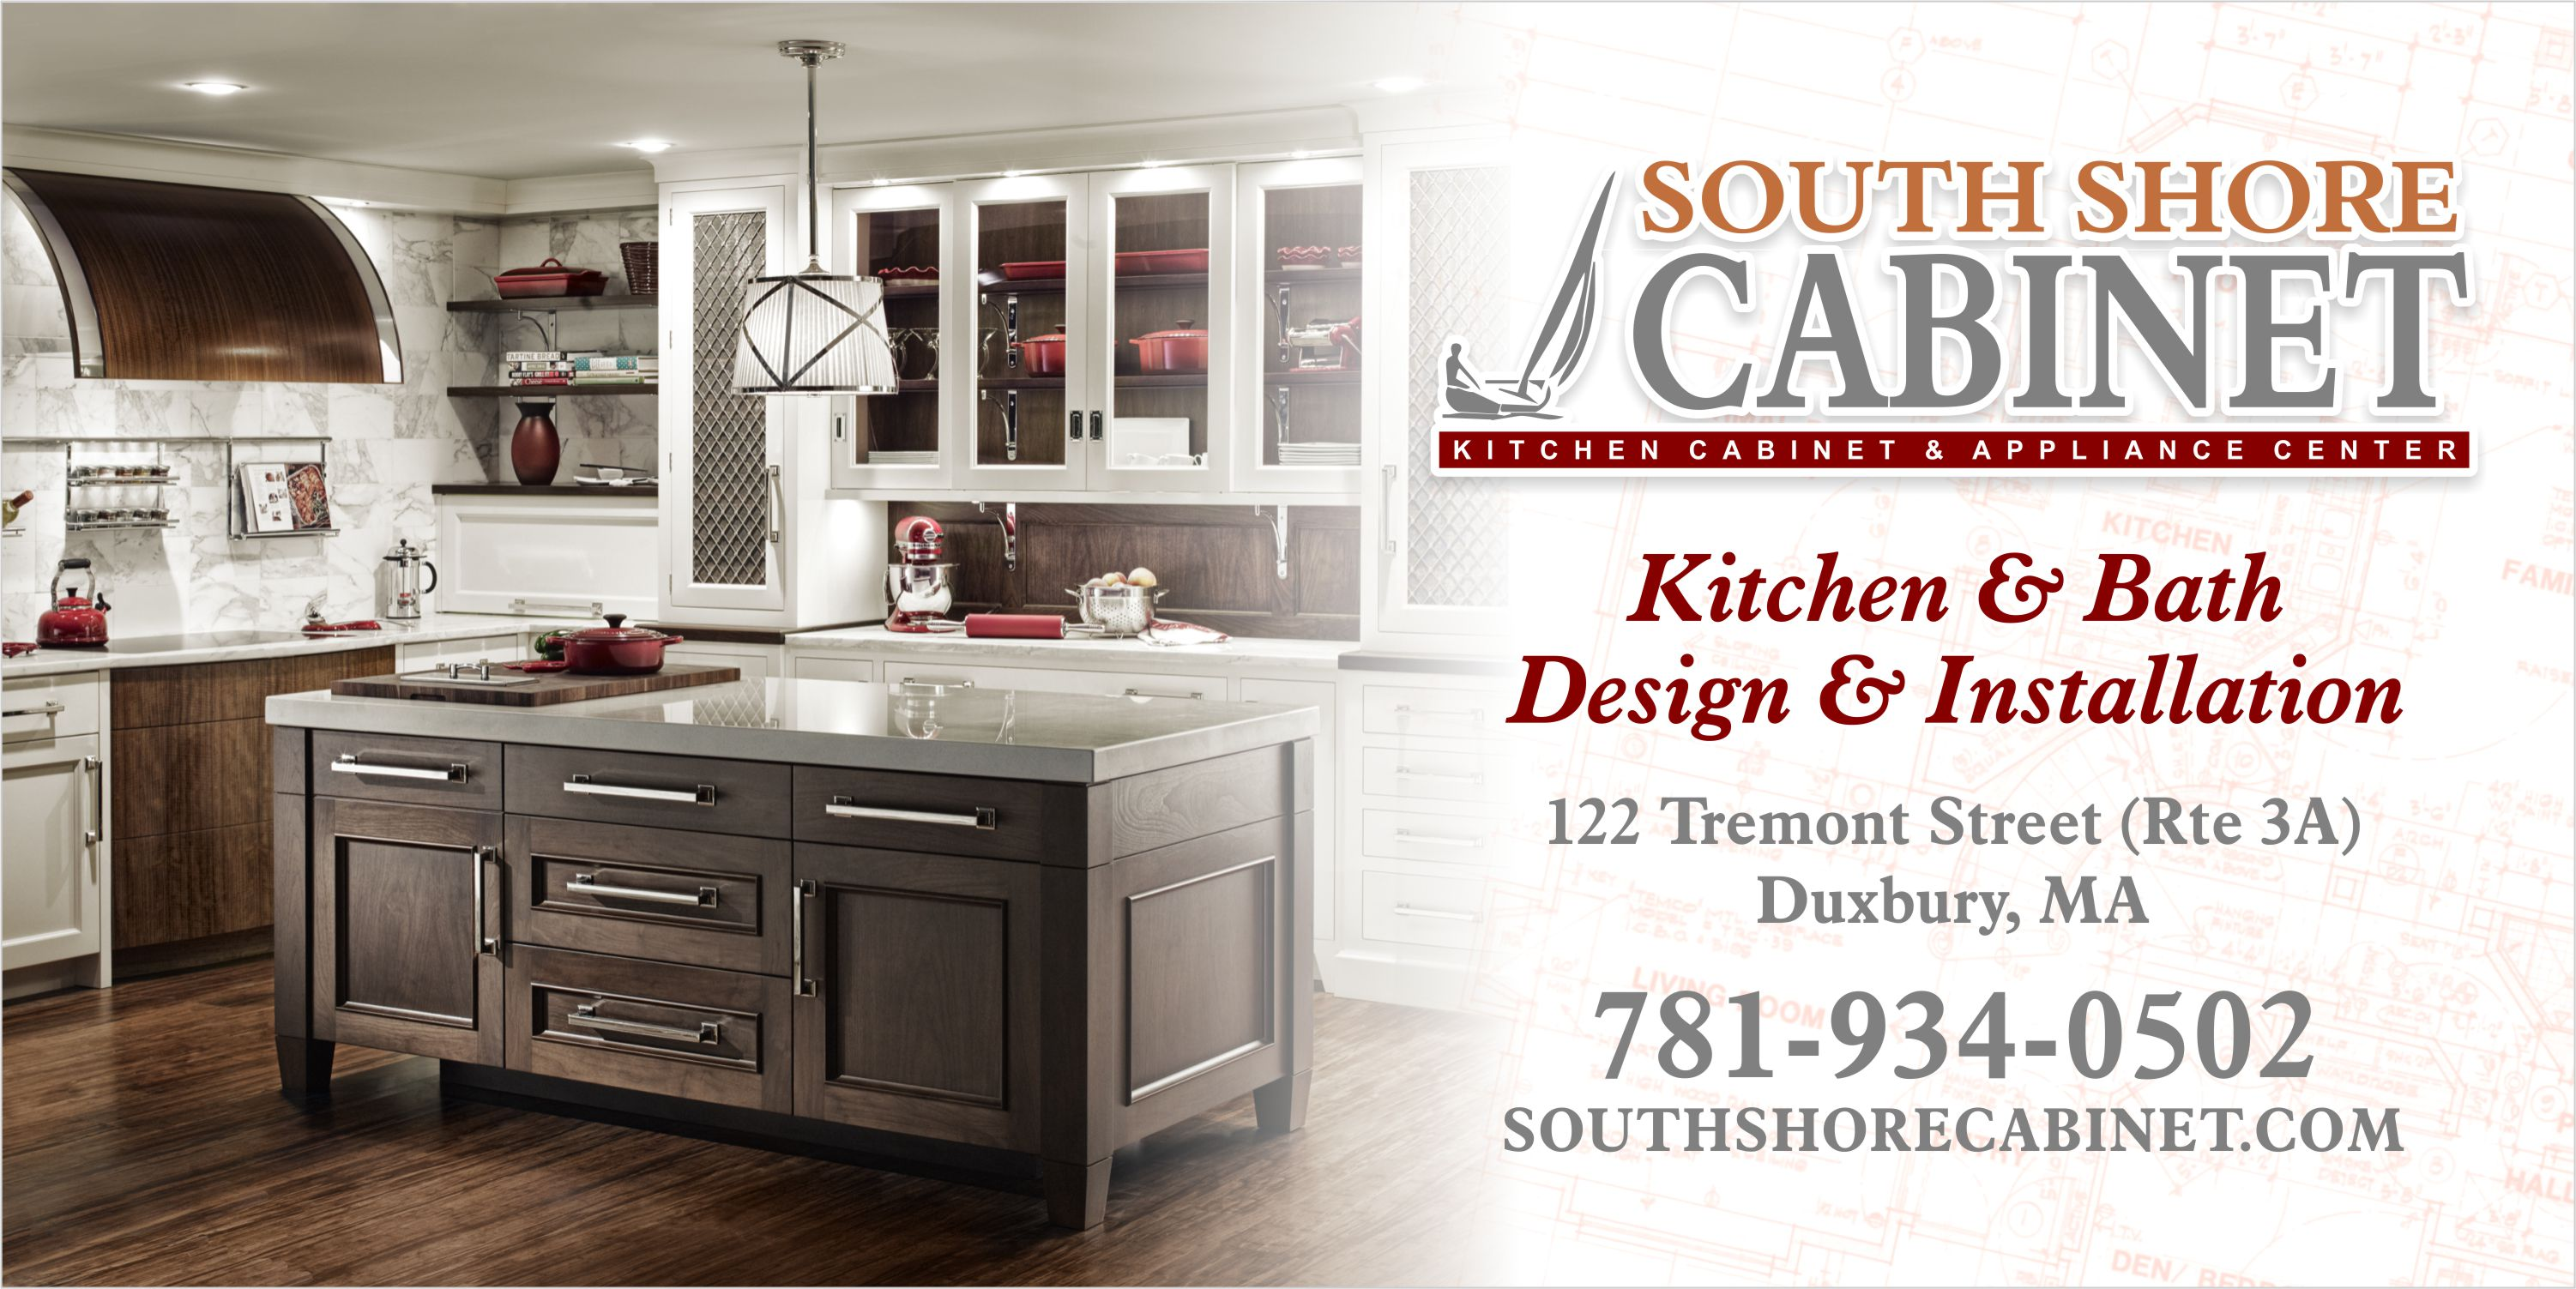 Custom Kitchen Cabinets Duxbury South Shore Cabinet - Custom kitchen cabinets design